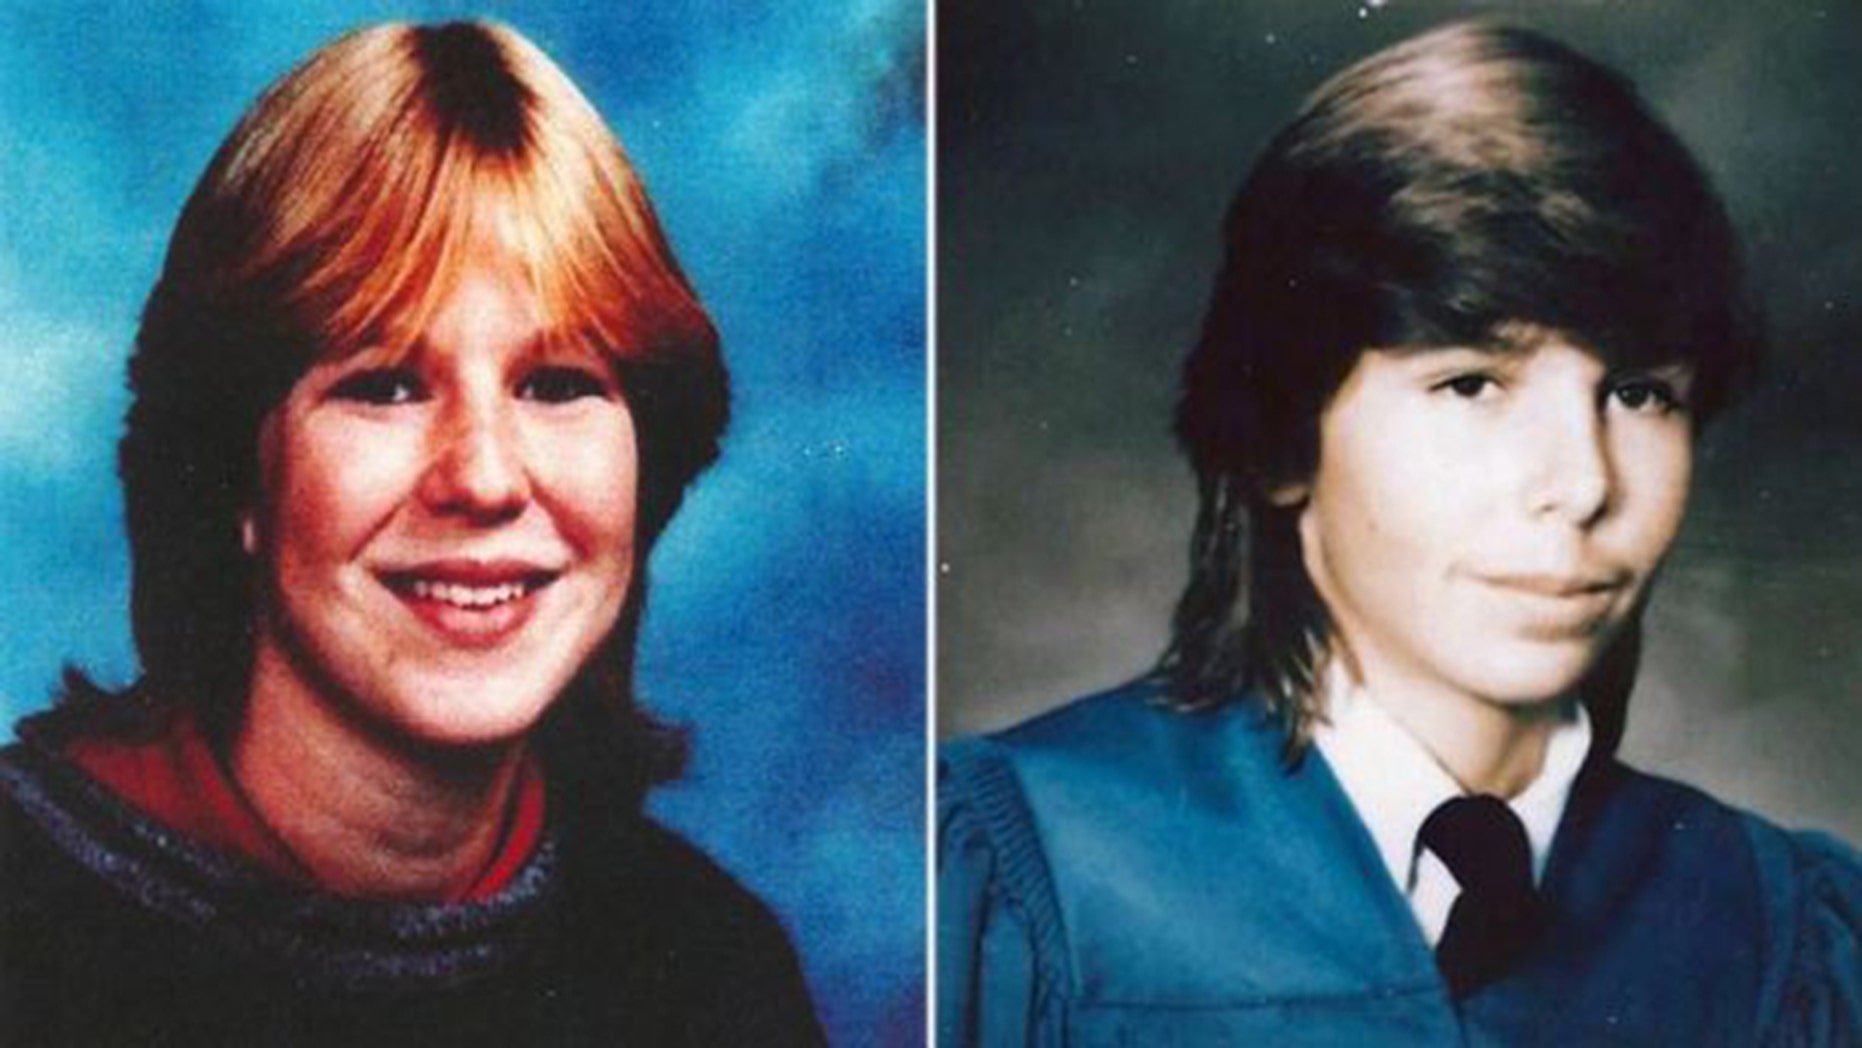 Tanya Van Cuylenborg, 18, and Jay Cook, 20, were killed in November, 1987, after an overnight trip from Canada to Seattle.